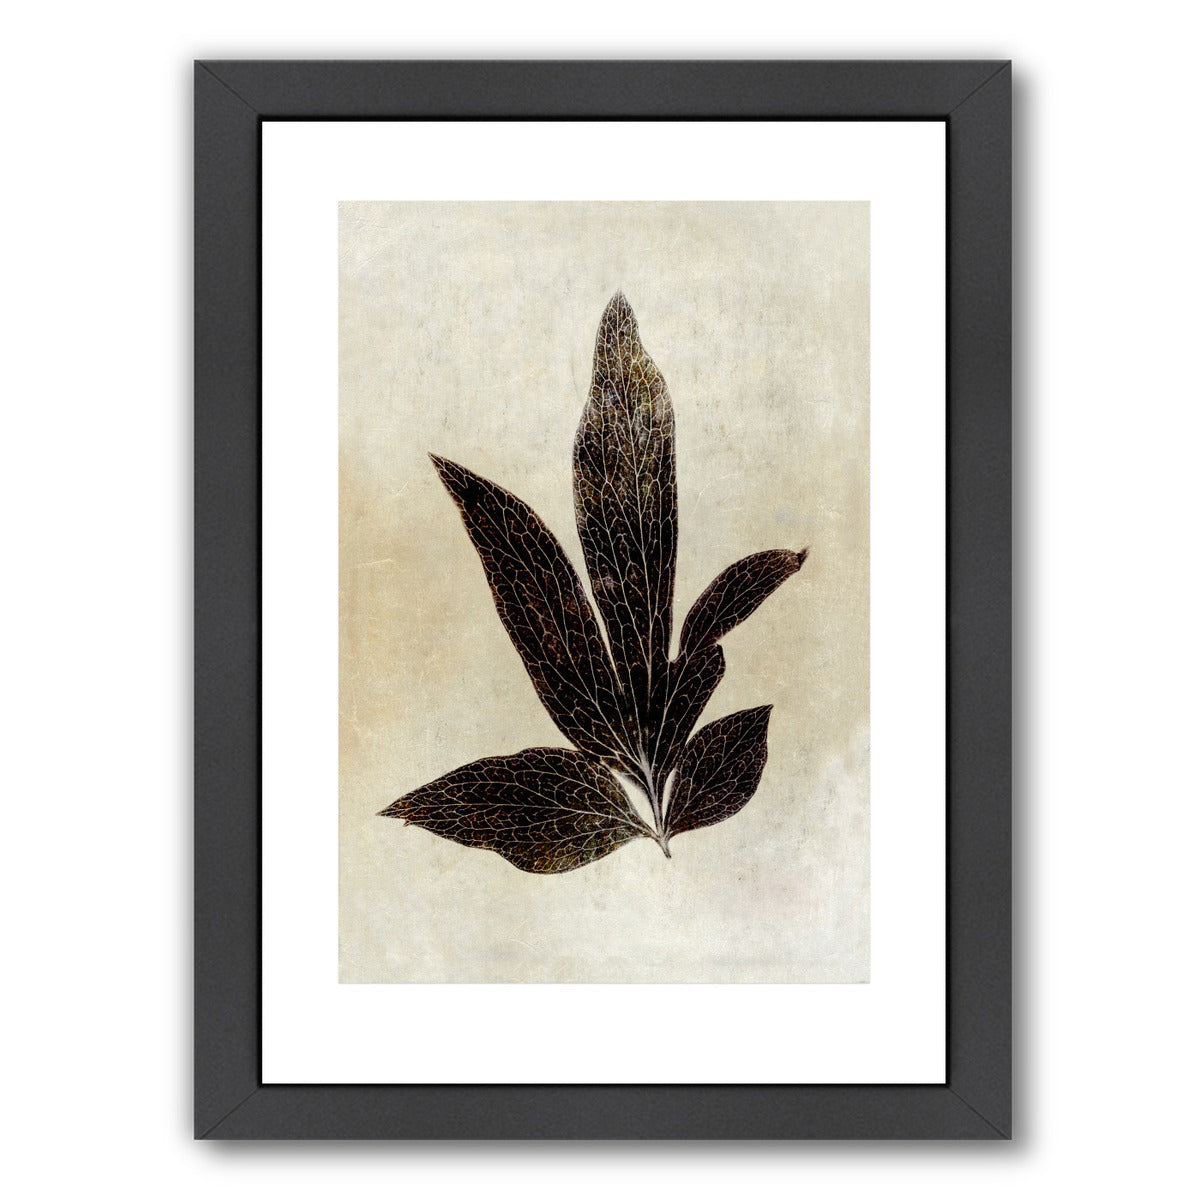 Sepia Leaf Collage I By Chaos & Wonder Design - Black Framed Print - Wall Art - Americanflat